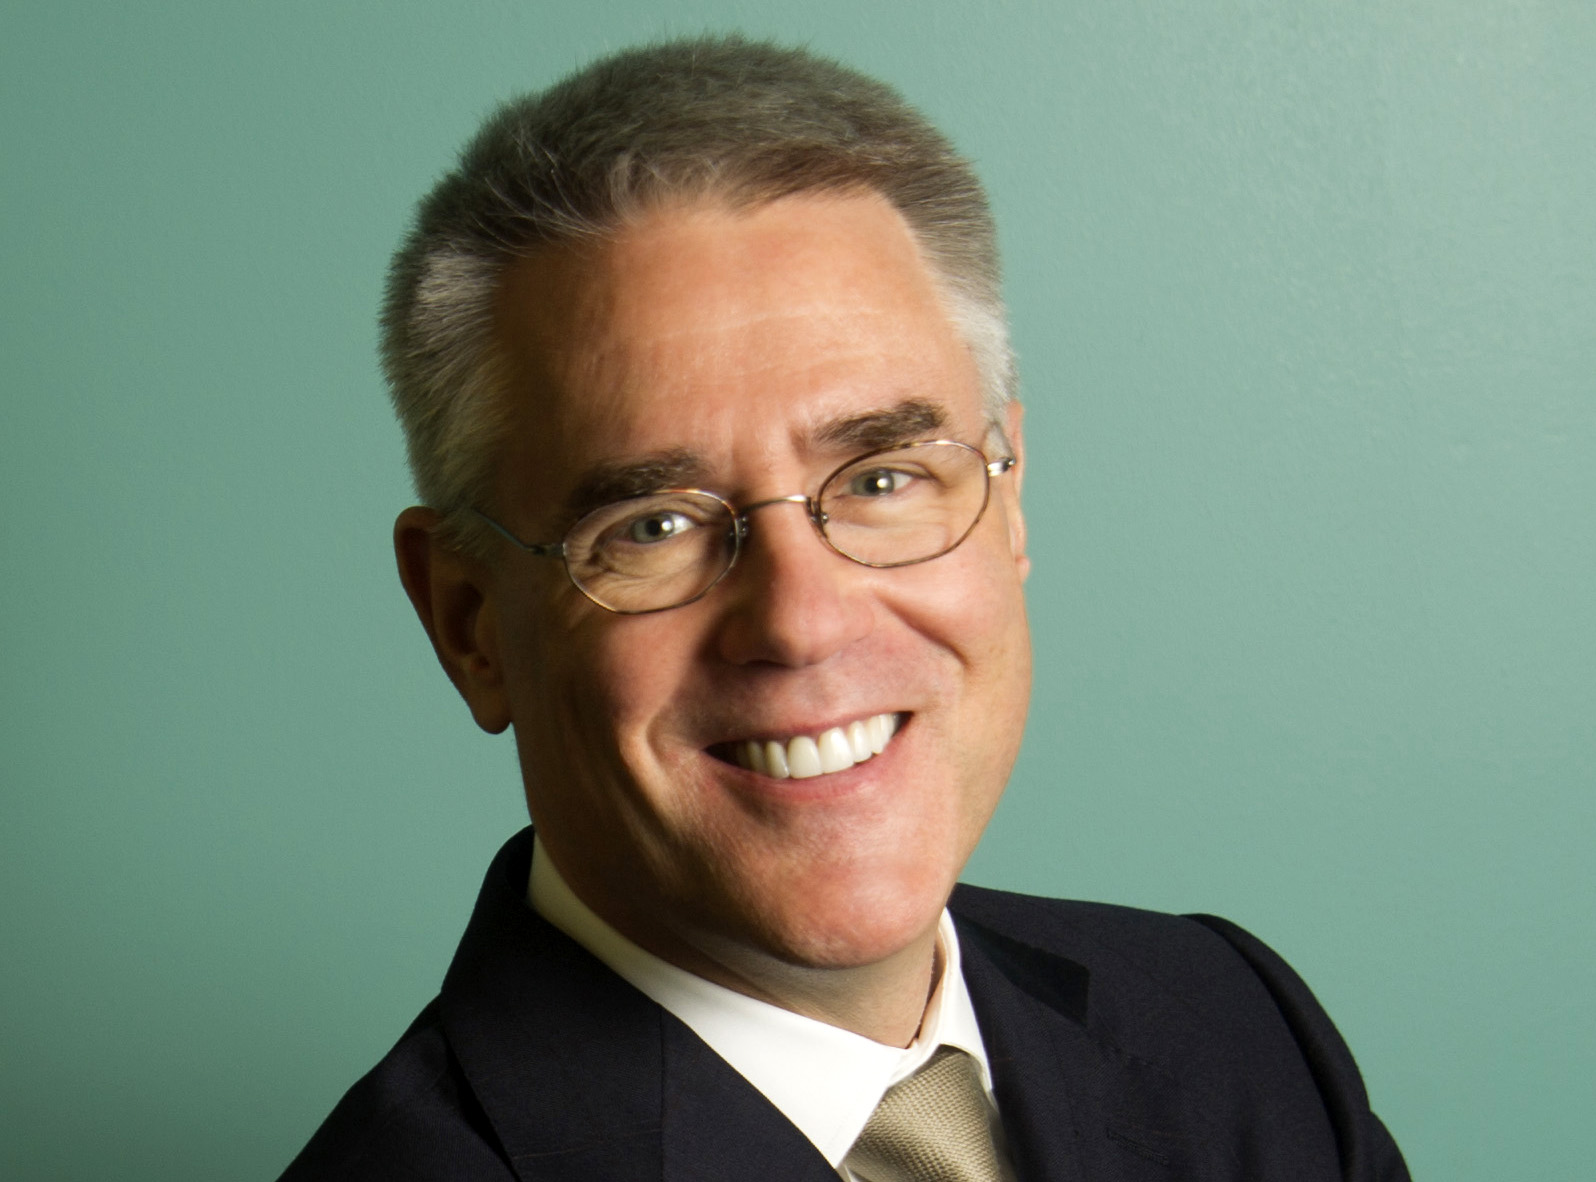 Distinguished academic leader Steven Currall joins SMU as